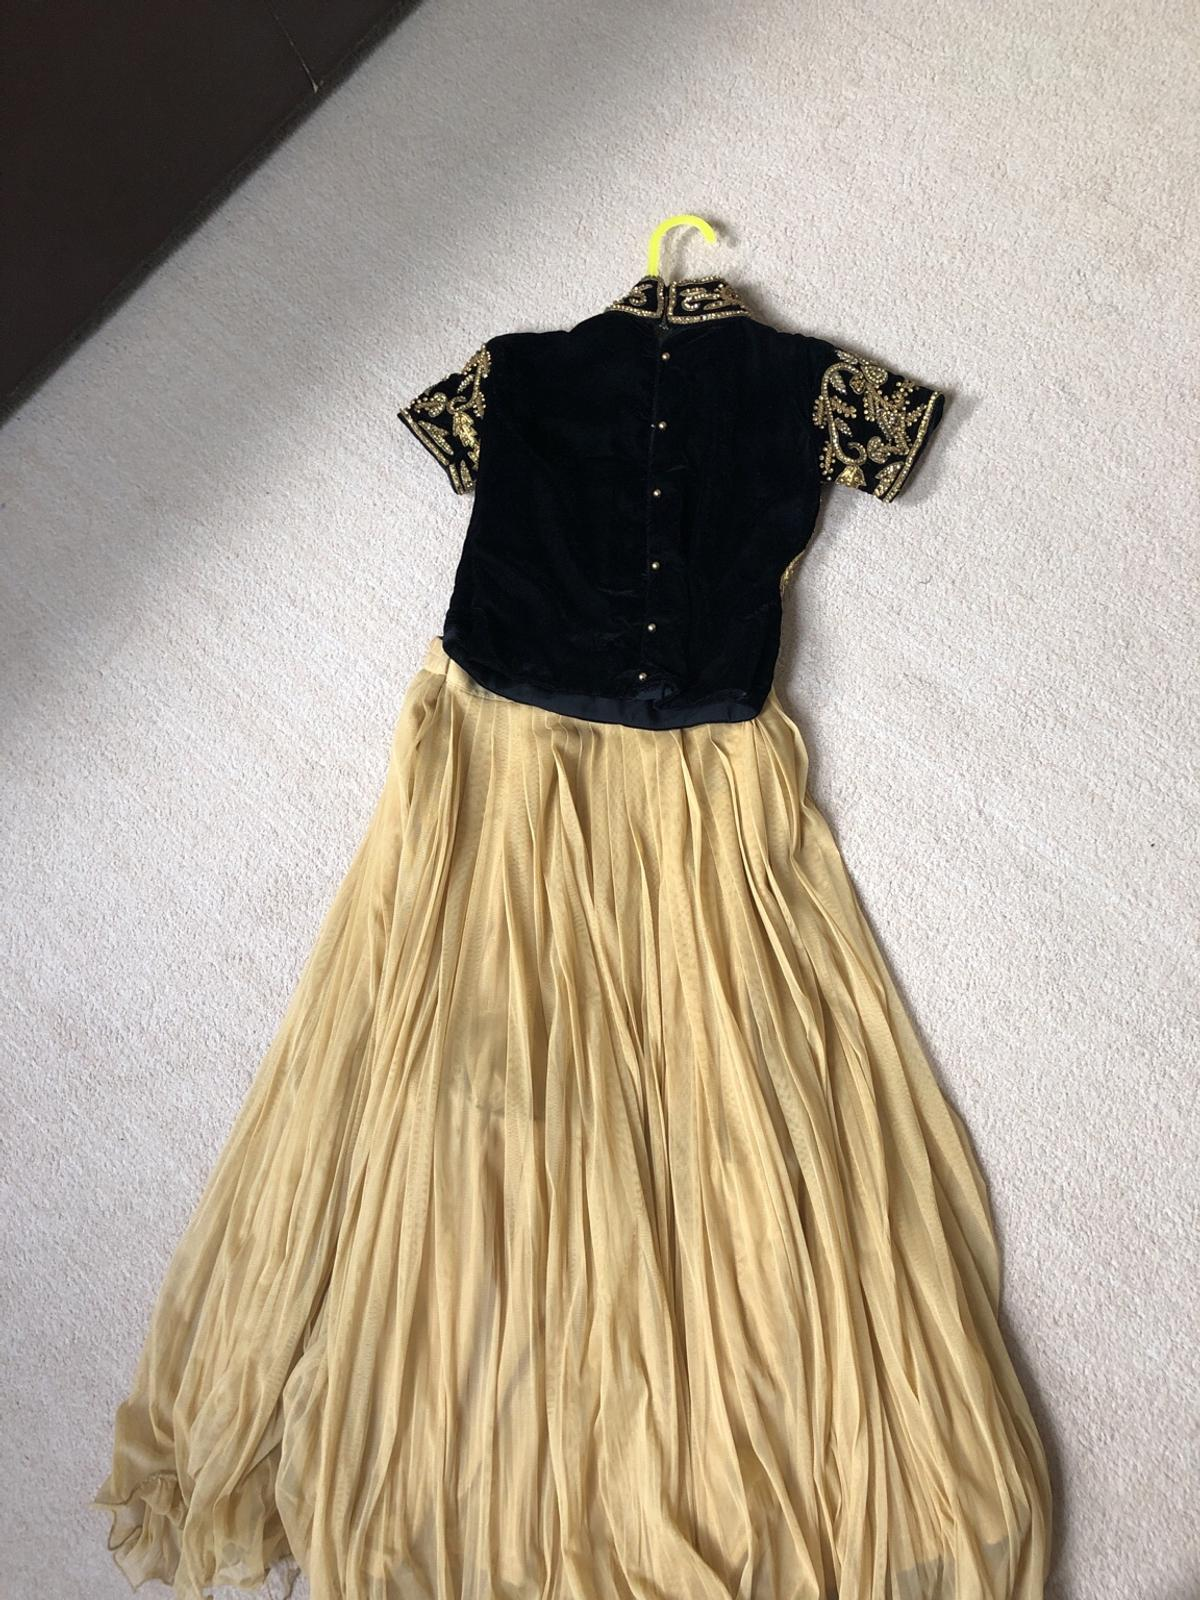 Black velvet top with gold embellishments Gold net skirt Good condition Size 26, would fit ages approx 8-10 Delivery extra